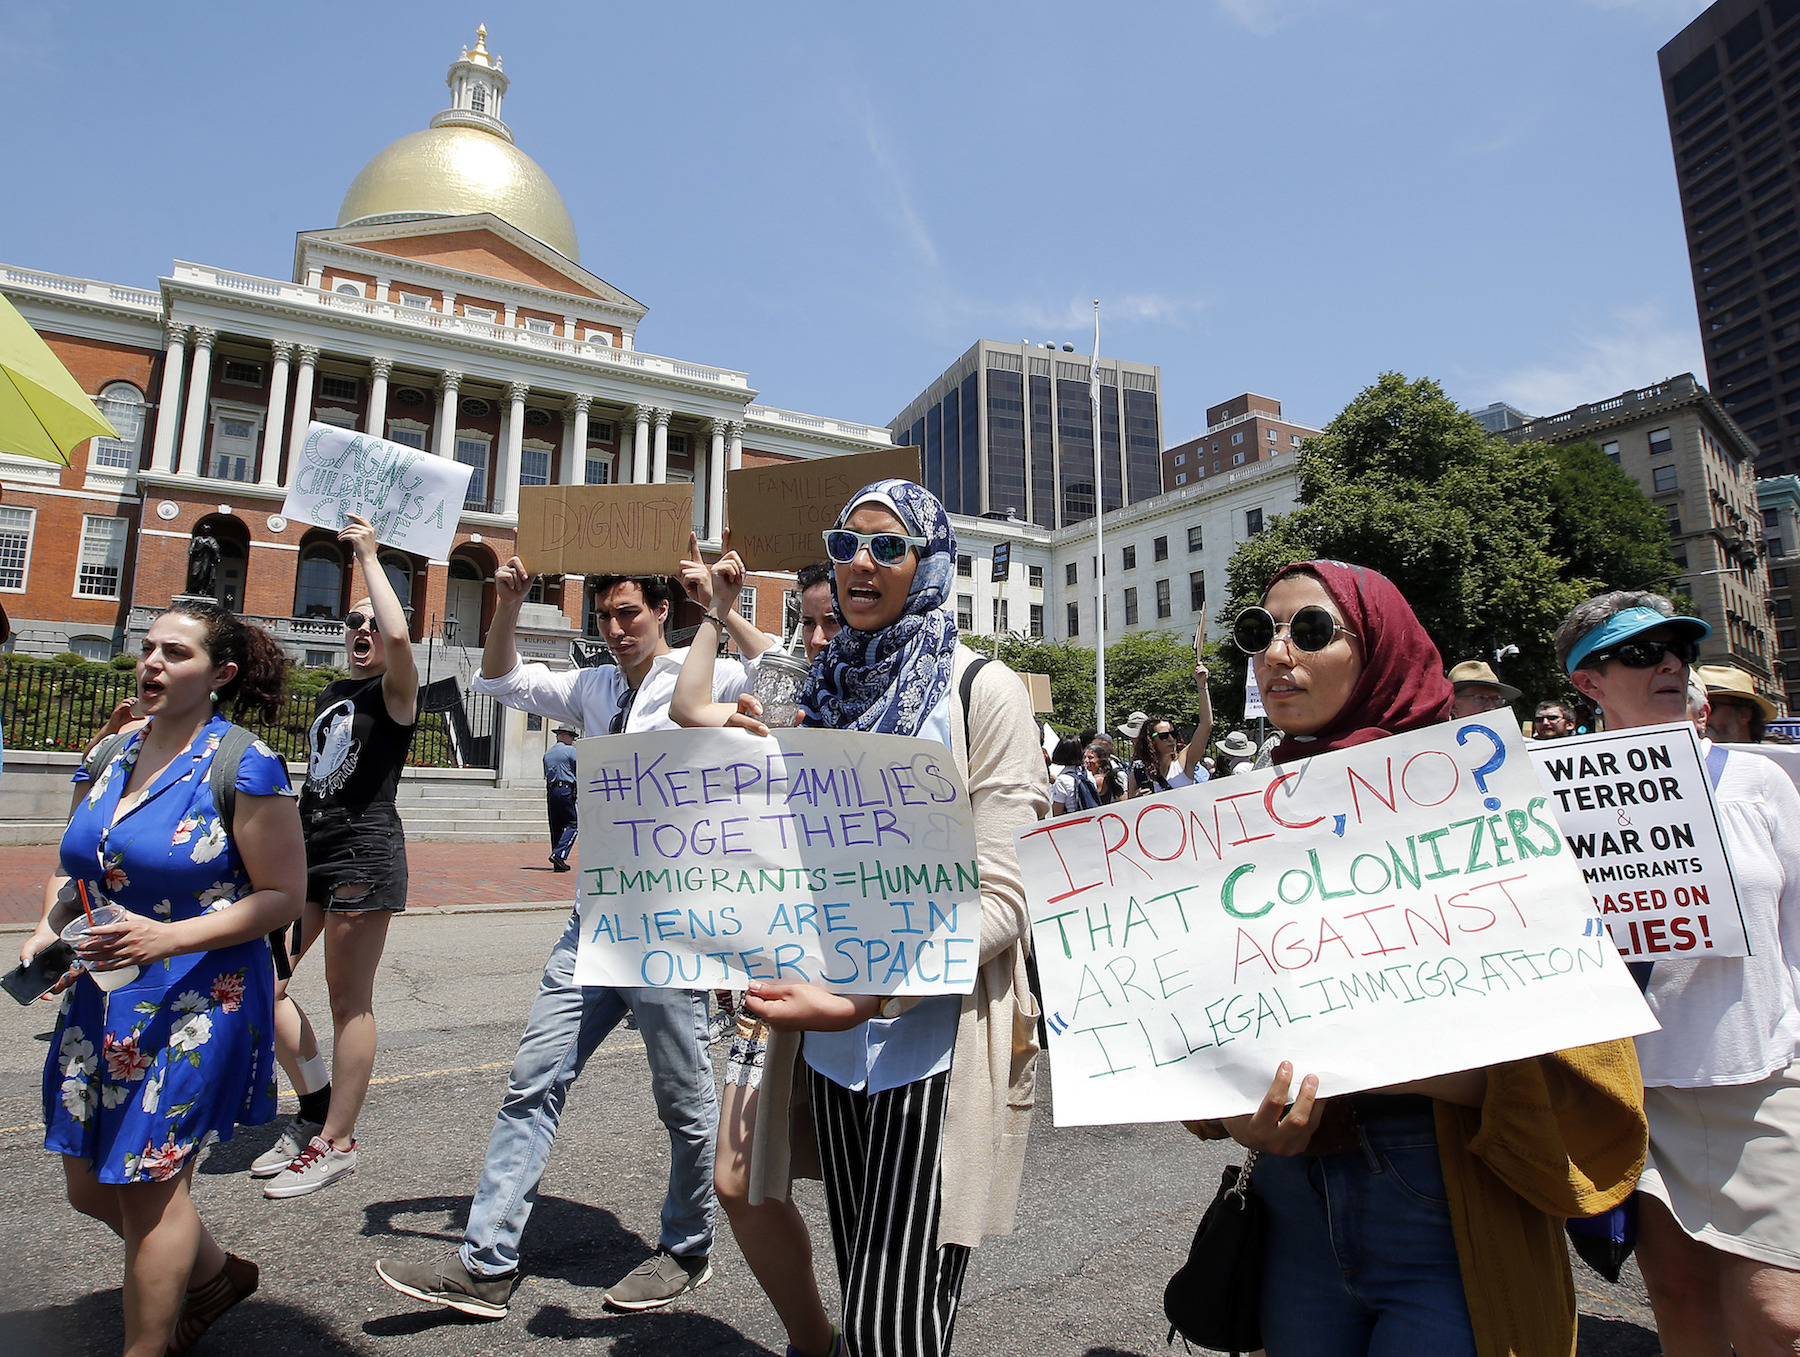 "<div class=""meta image-caption""><div class=""origin-logo origin-image ap""><span>AP</span></div><span class=""caption-text"">Lena Ismail, second from right, and Lamiya Khandaker, center, walk past the Massachusetts State House during a Rally Against Separation Saturday, June 30, 2018, in Boston. (AP Photo/Winslow Townson)</span></div>"